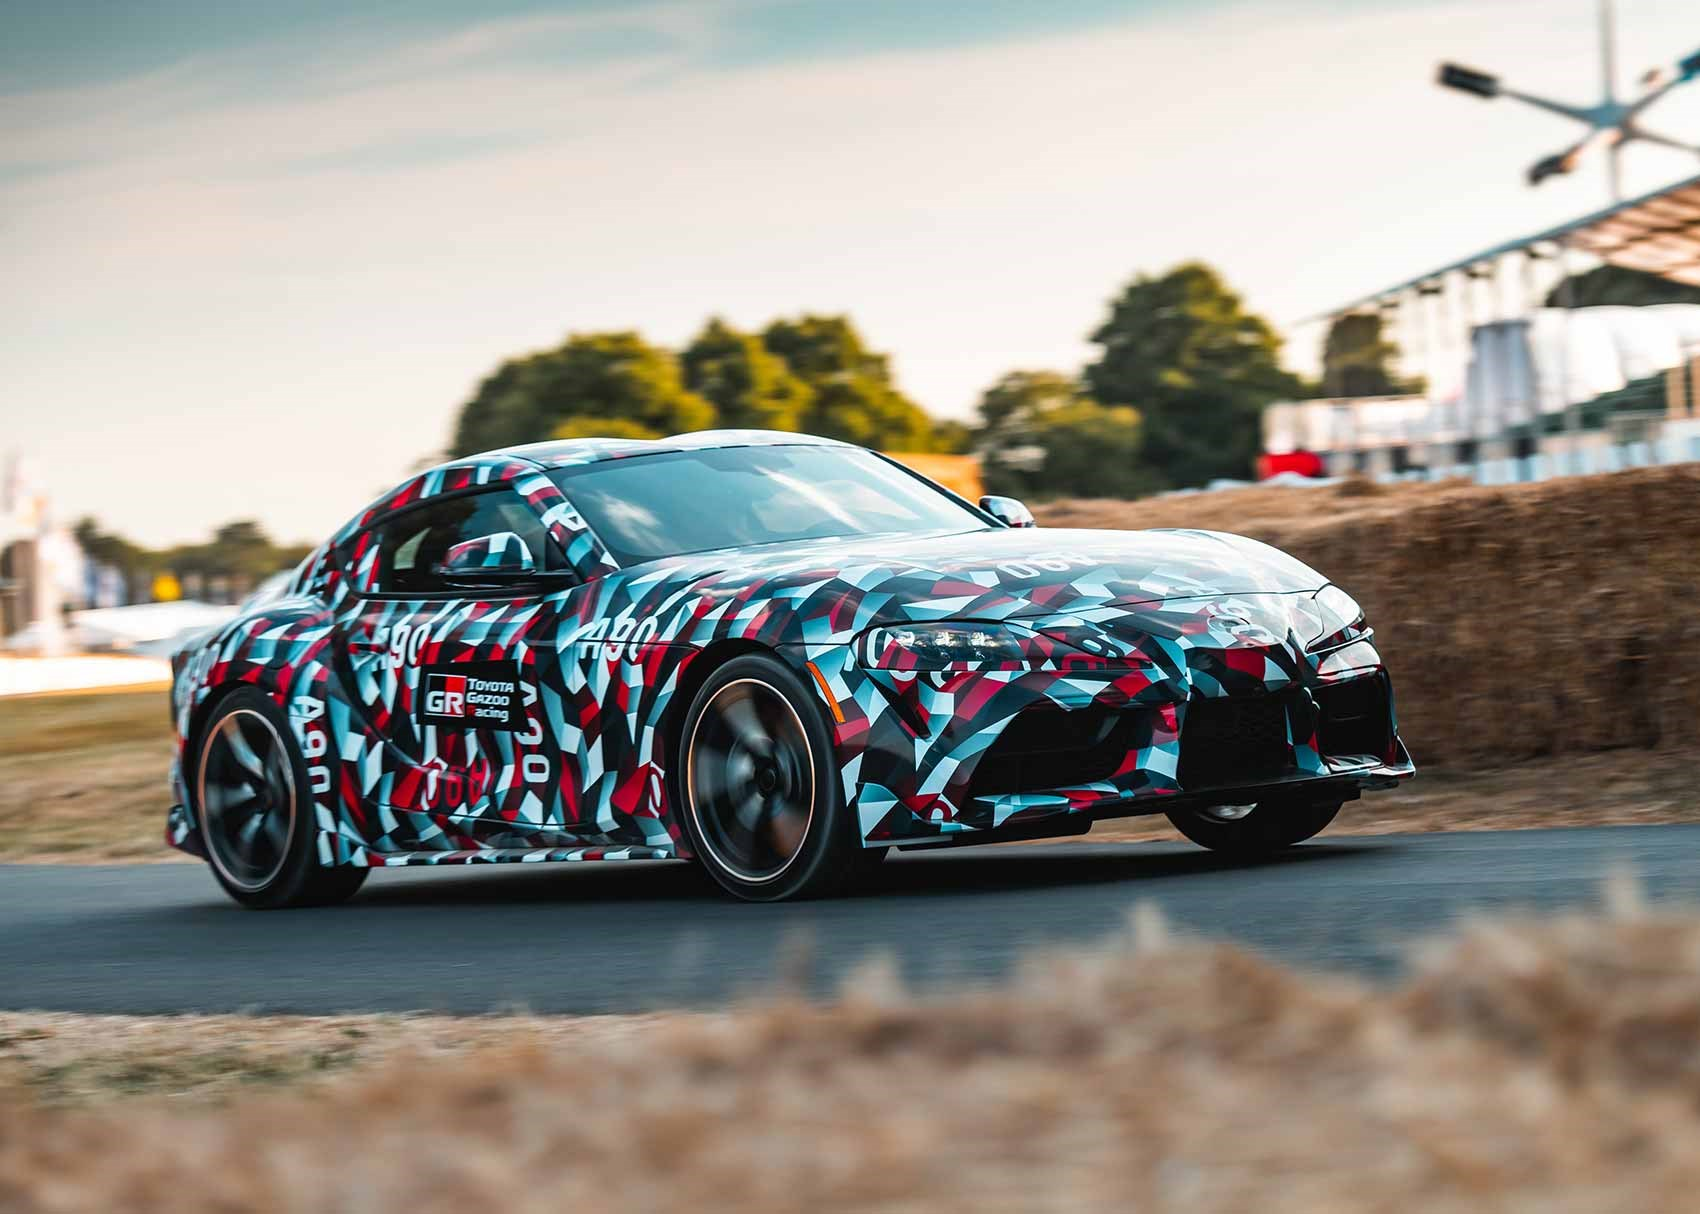 New 2019 toyota supra interior to be heavily driver focused car youll be able to buy the new toyota supra in early 2019 publicscrutiny Images